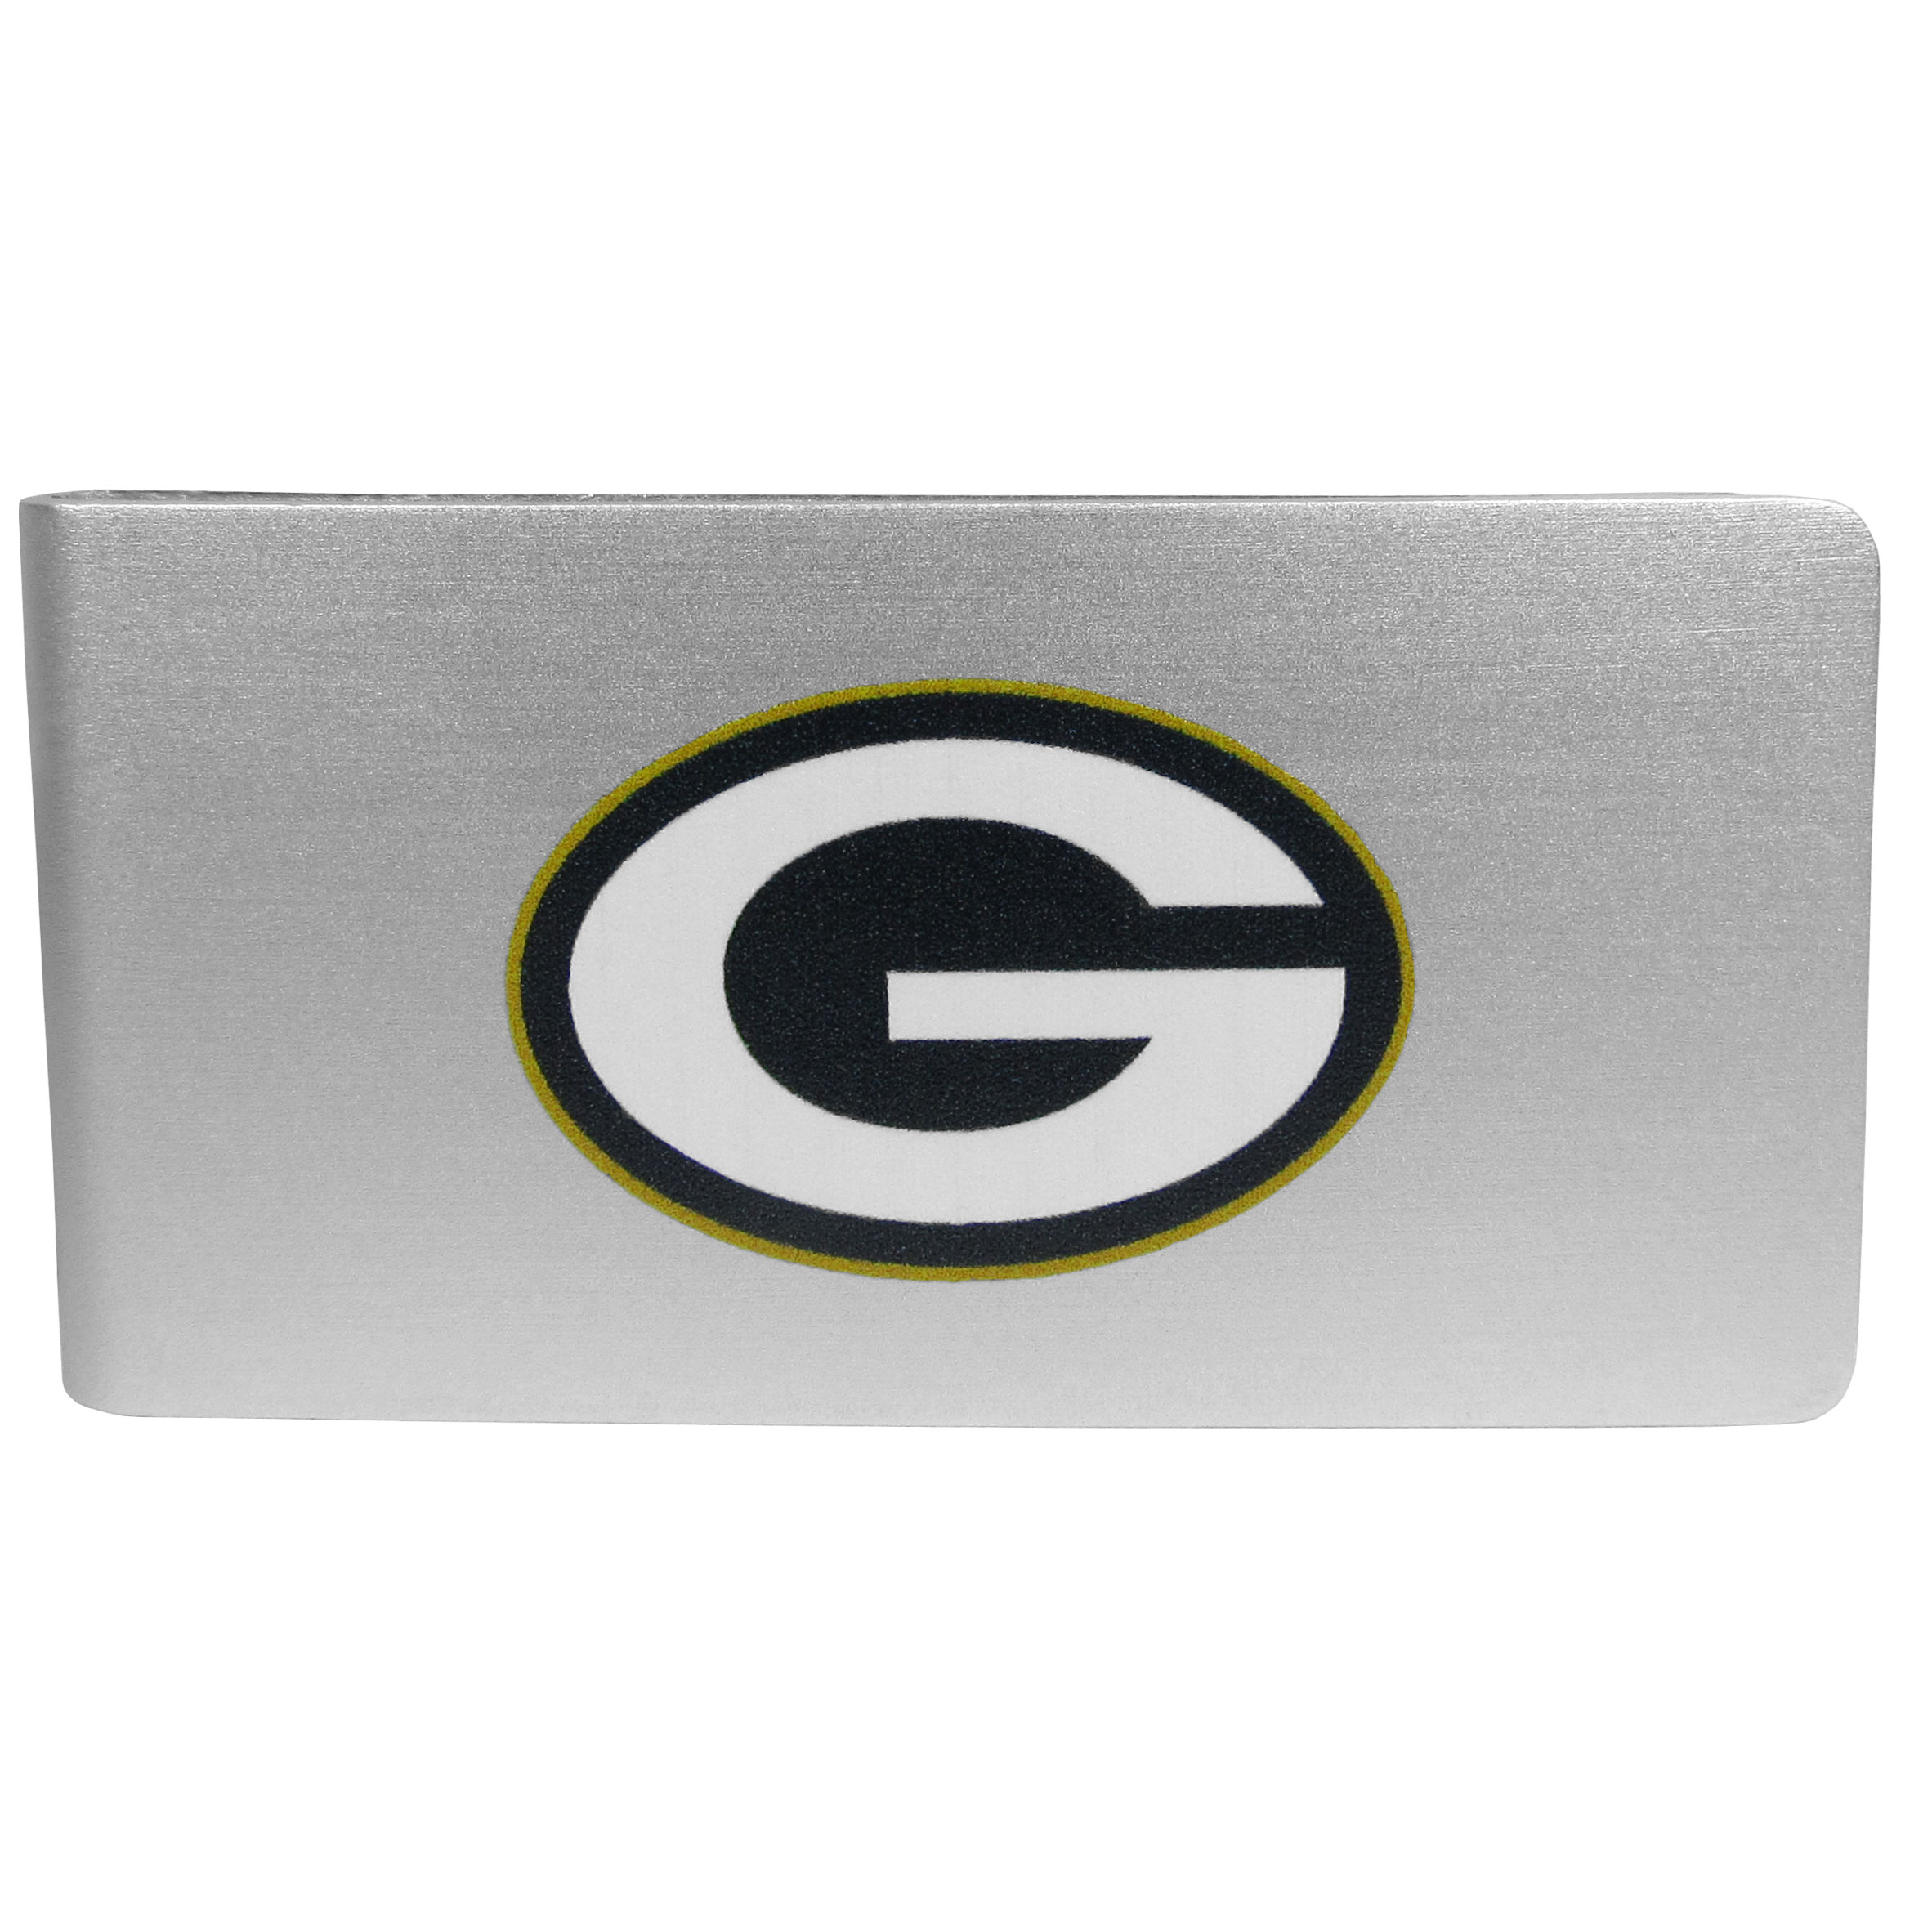 Green Bay Packers Logo Money Clip - Our brushed metal money clip has classic style and functionality. The attractive clip features the Green Bay Packers logo expertly printed on front.